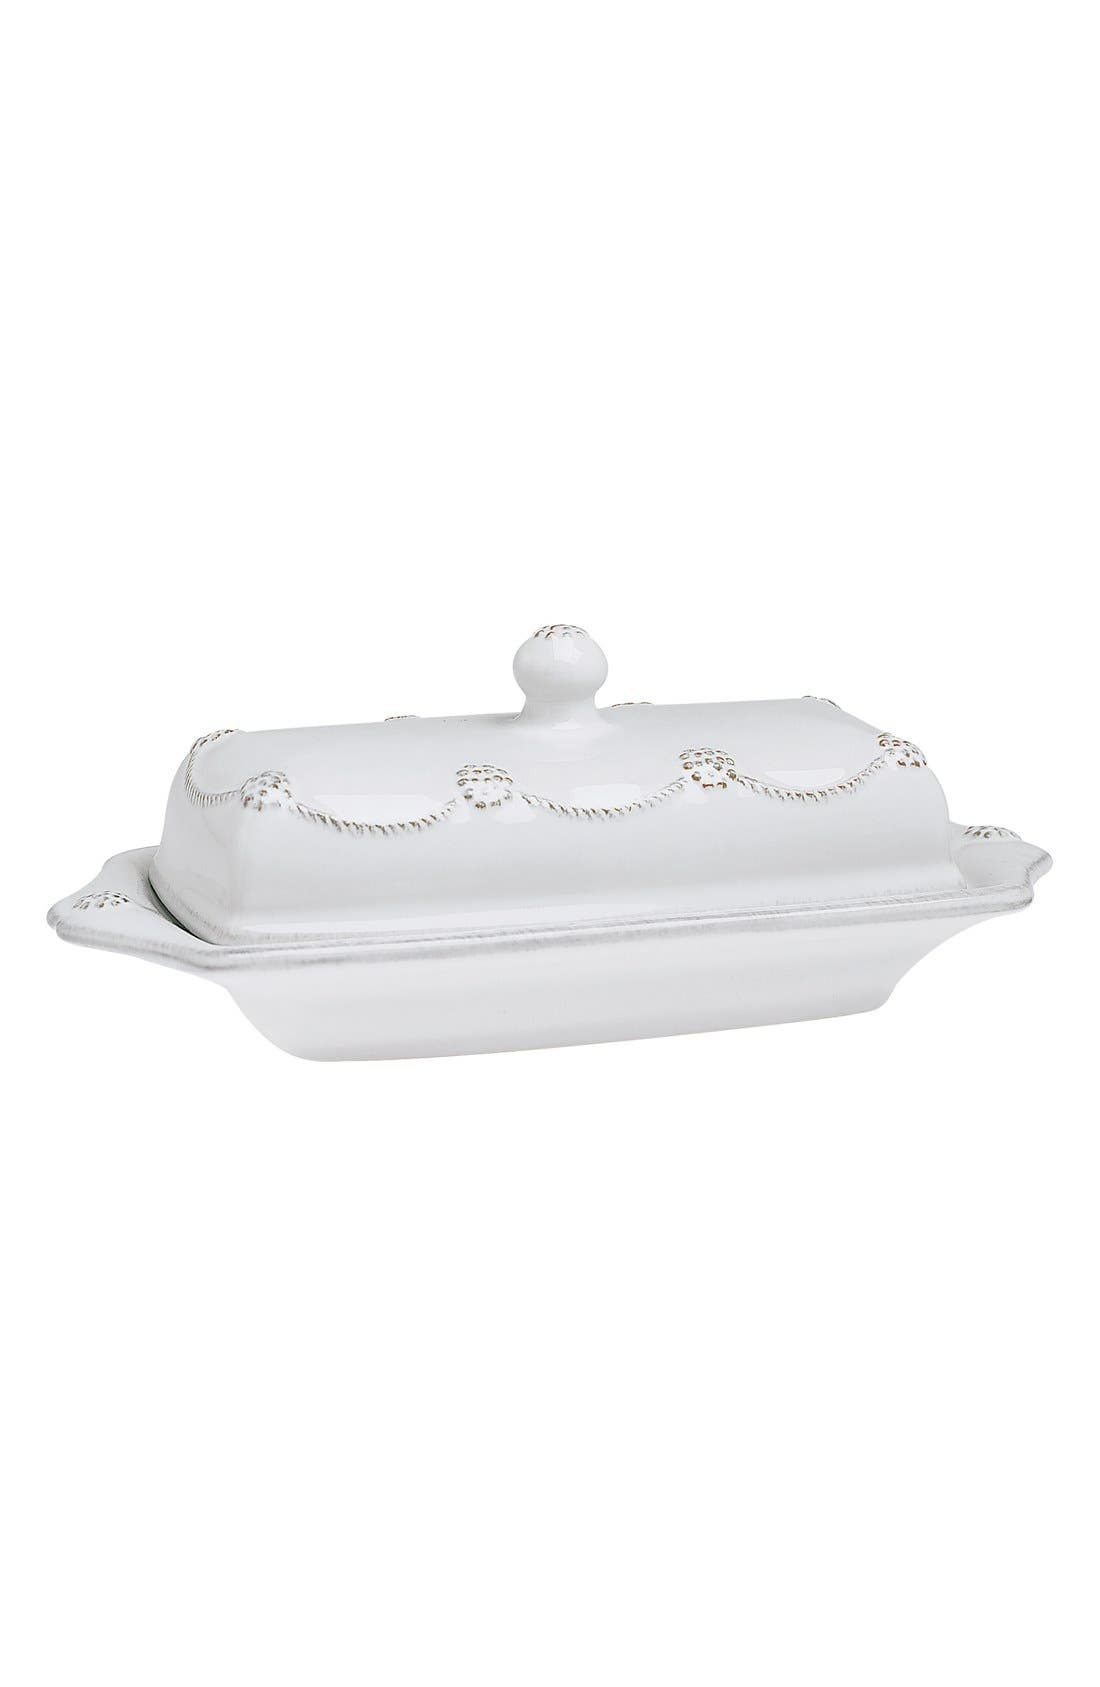 'Berry and Thread' Ceramic Butter Dish,                         Main,                         color, Whitewash